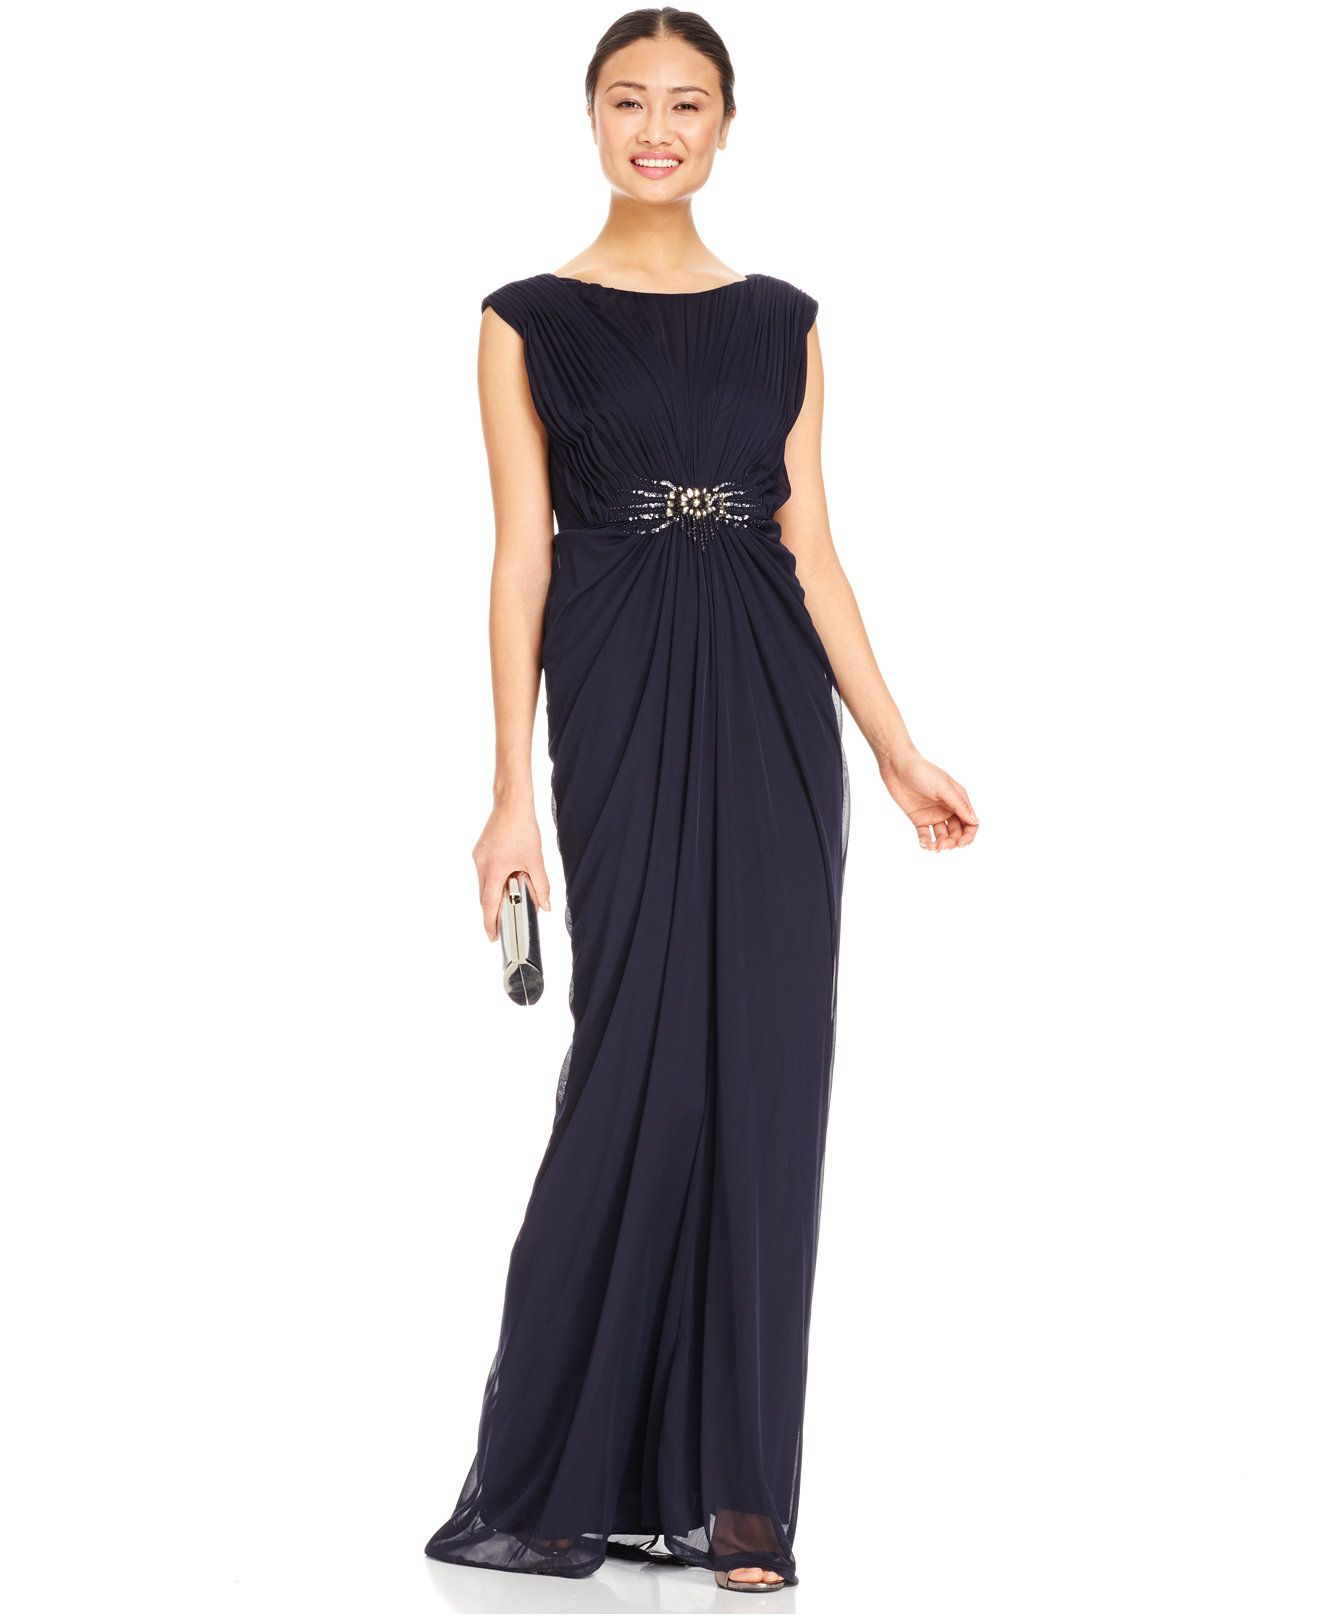 Adrianna Papell Embellished Shirred Jersey Gown - Dresses - Women ...